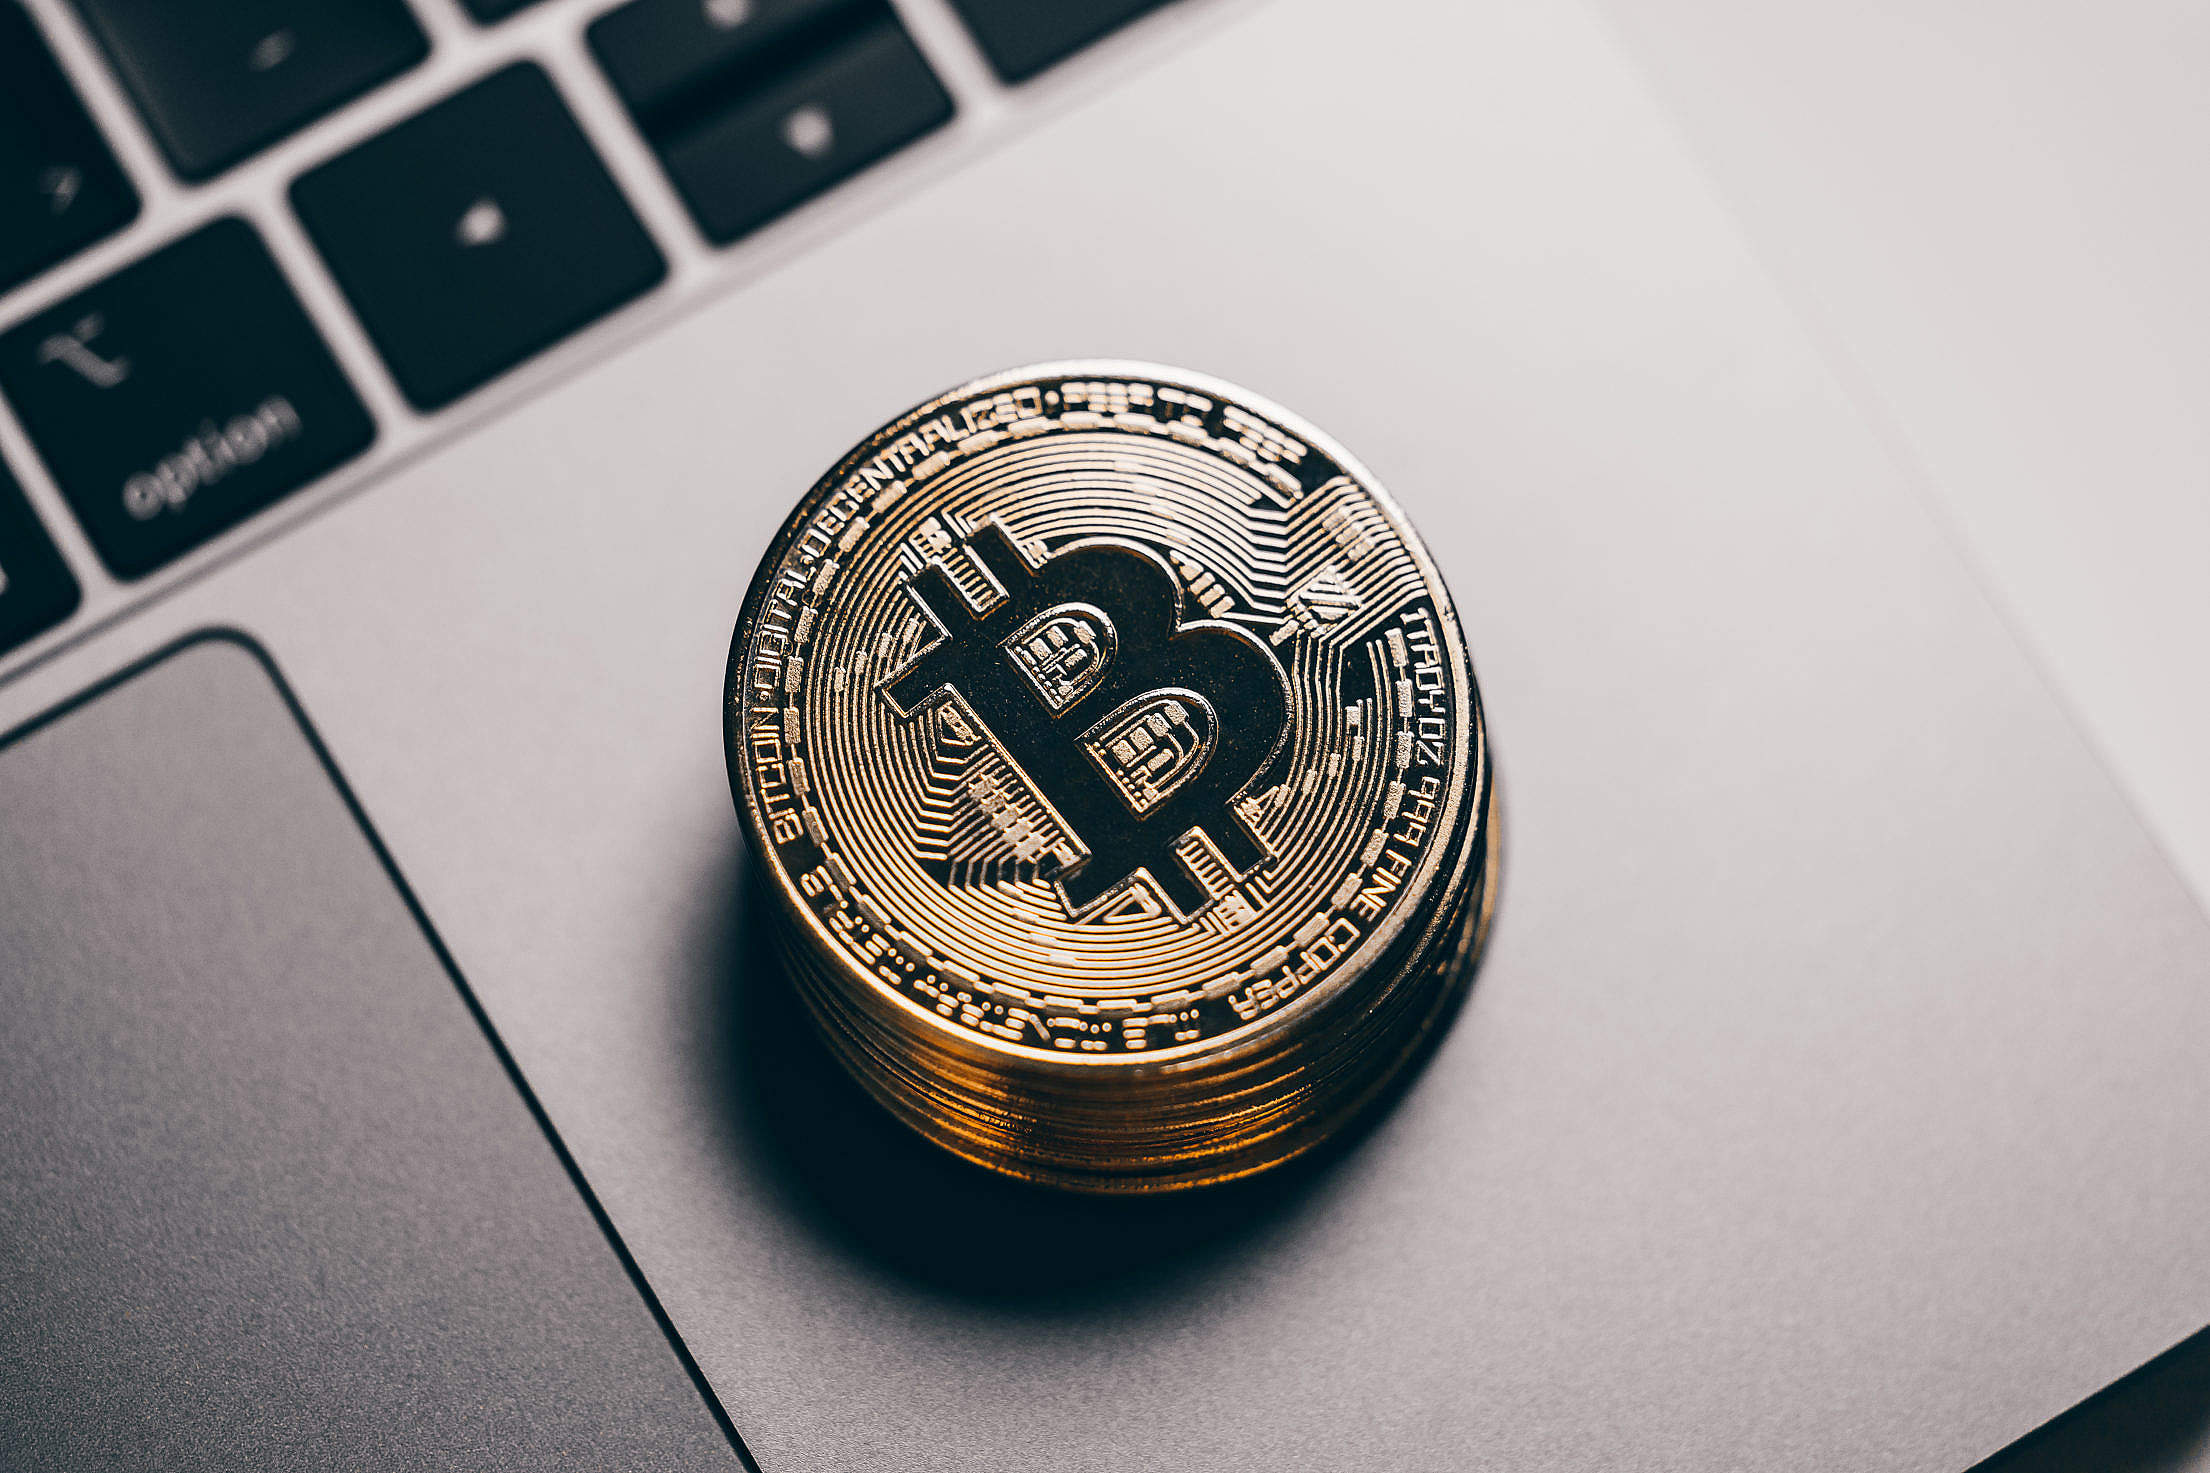 Pile of Bitcoins on a Laptop Free Stock Photo